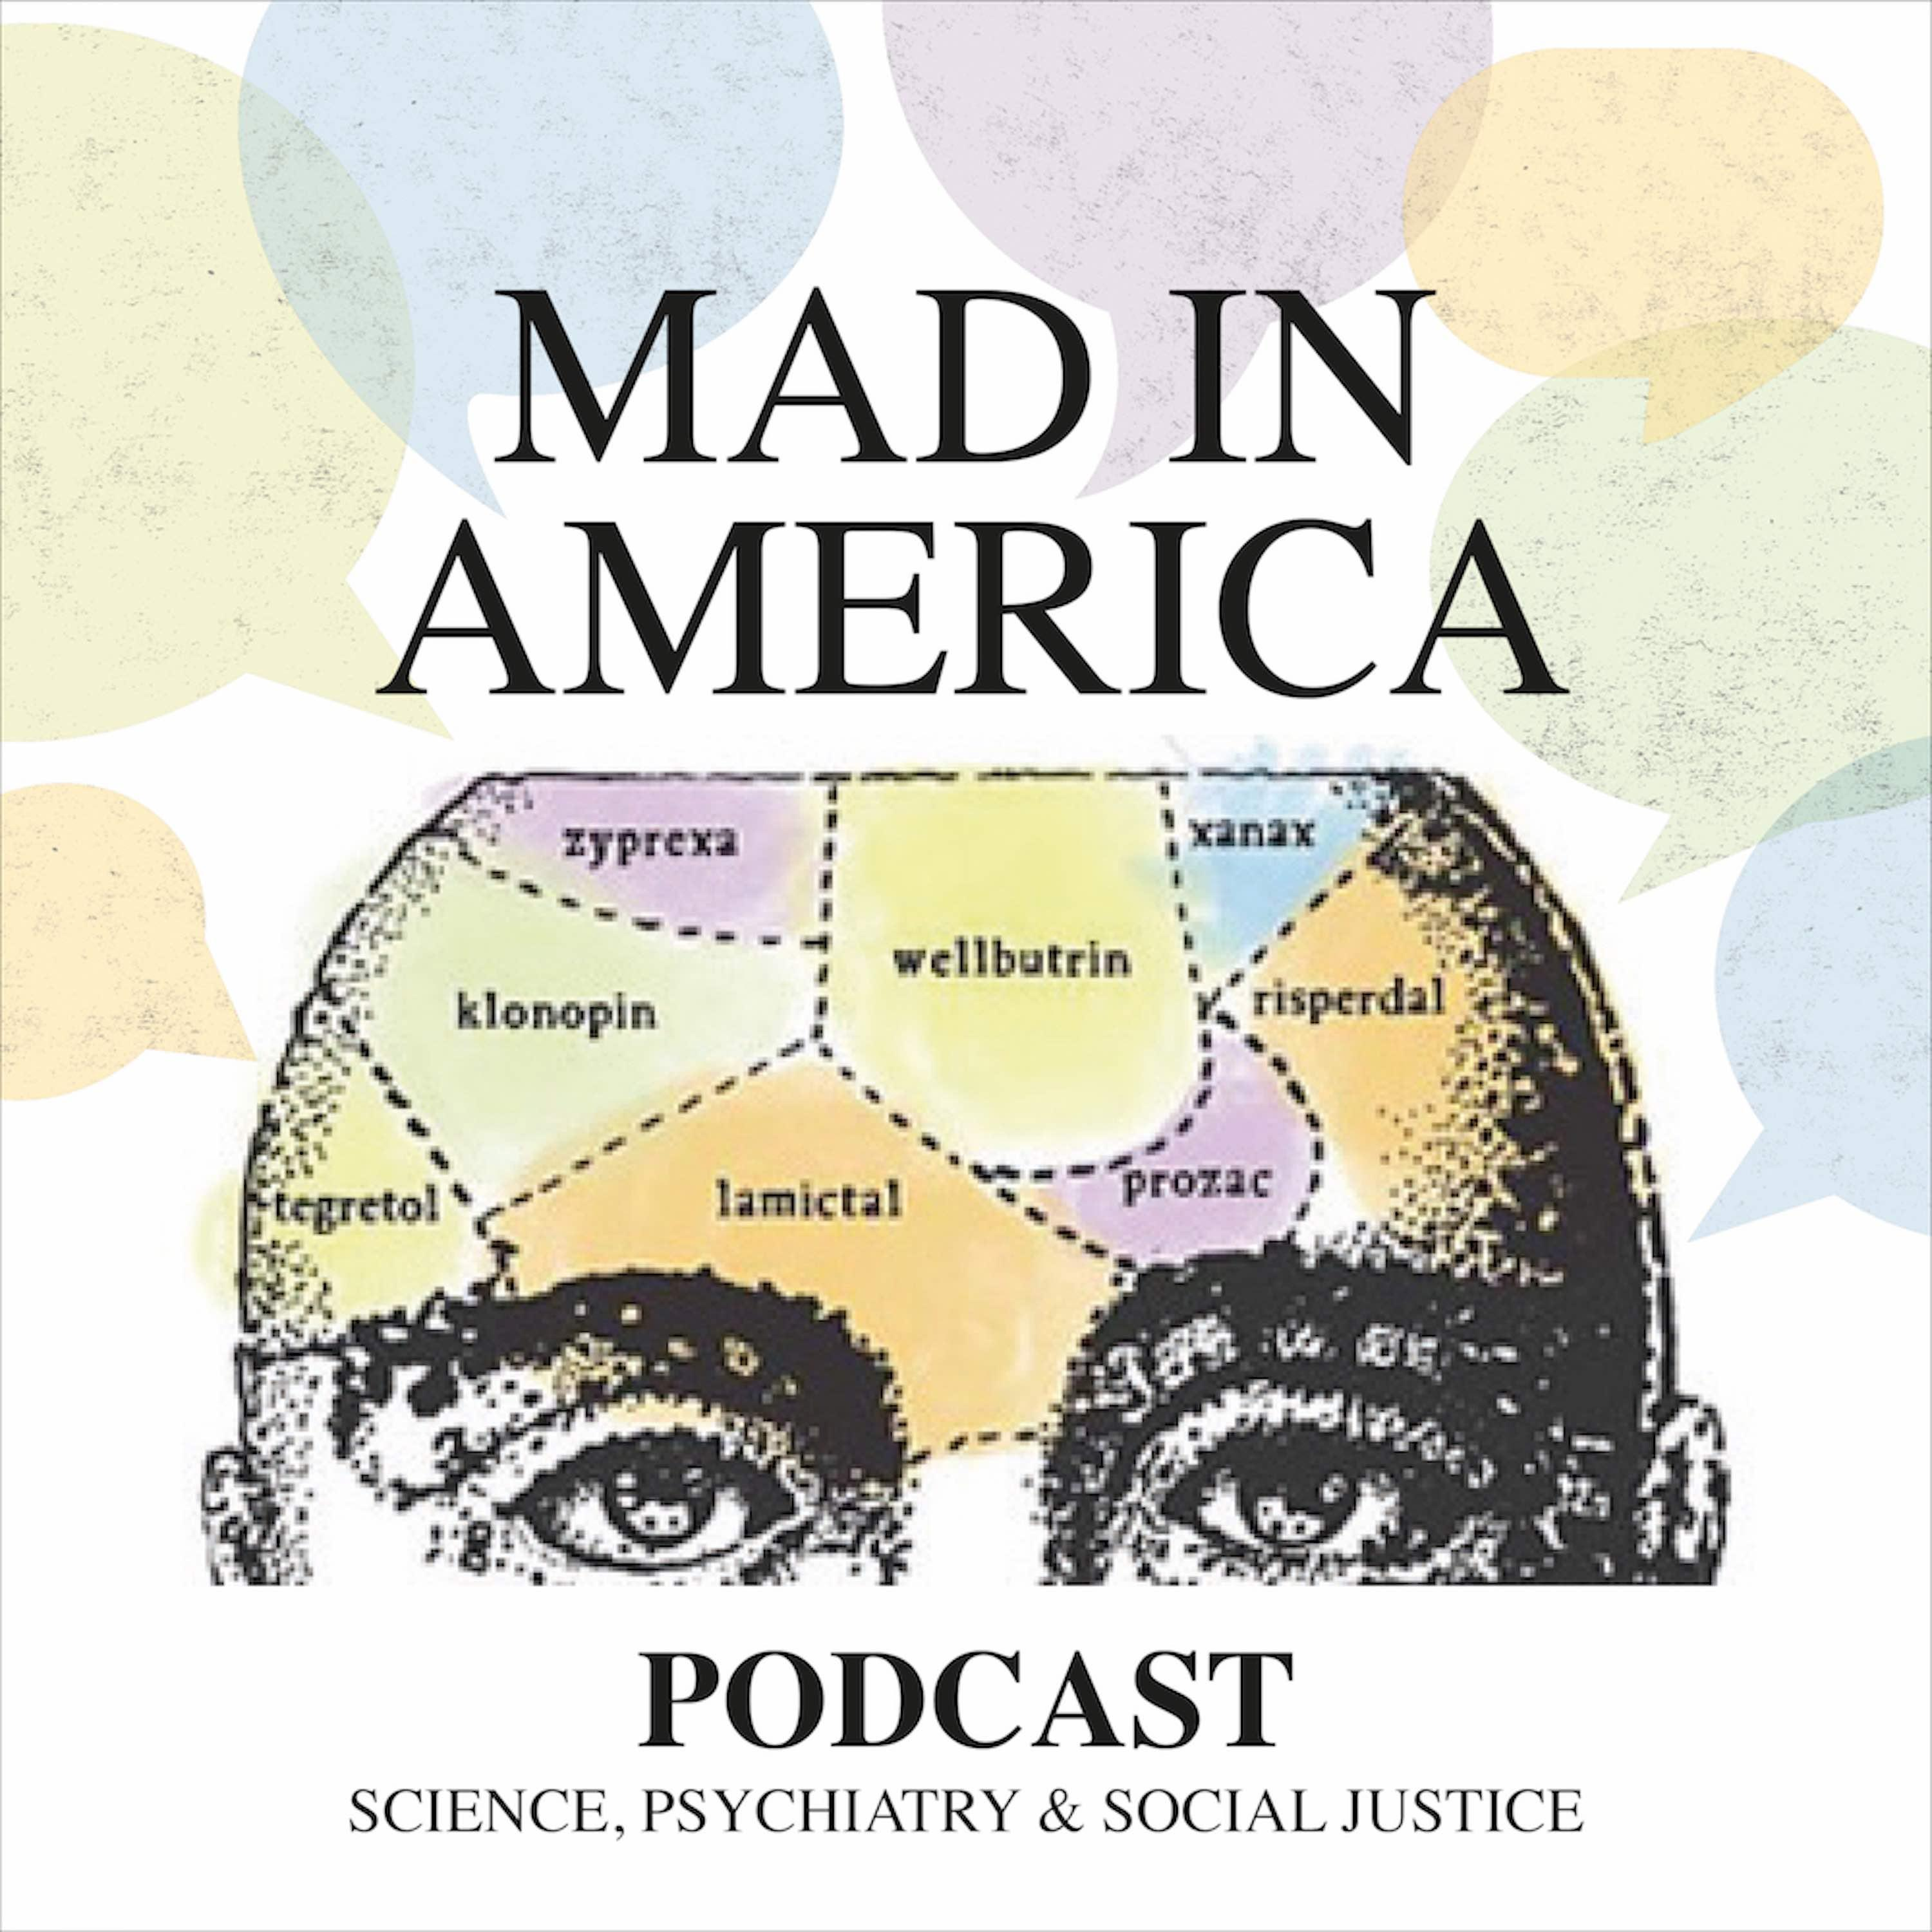 Mad in America: Rethinking Mental Health - Alita Taylor - Open Dialogue - Making Meaning